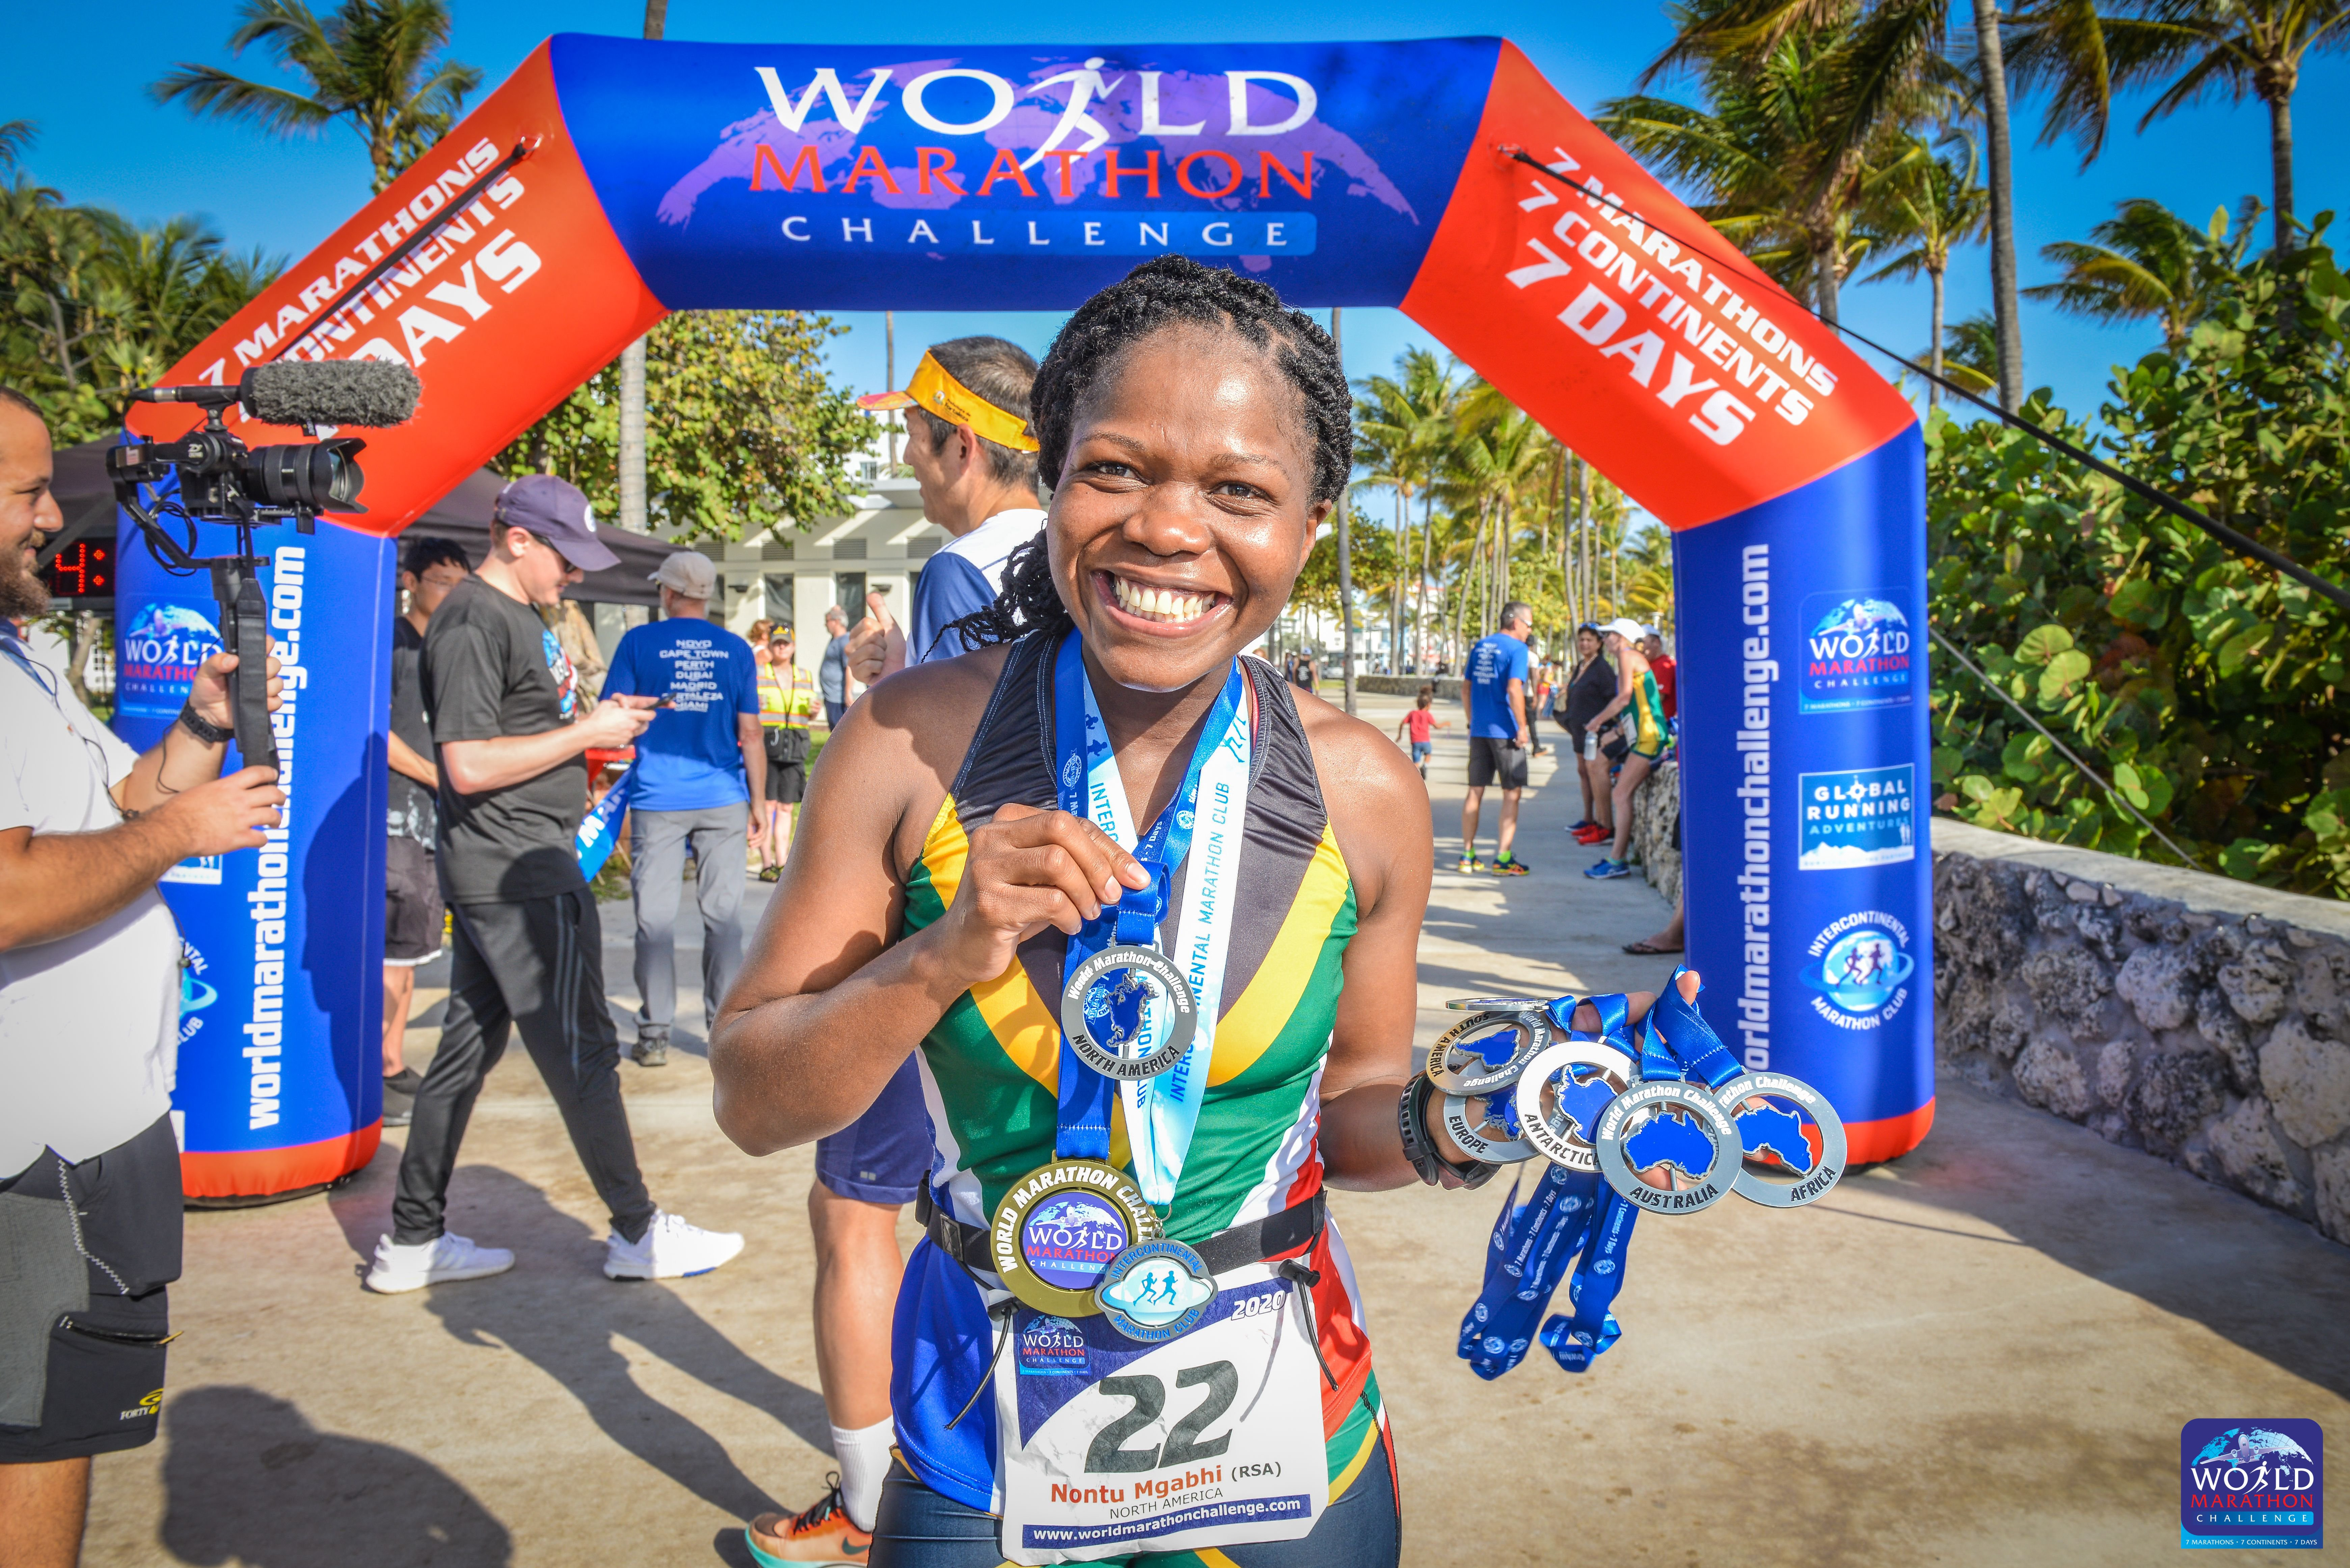 South African long distance runner raises money for schools and students in Kwa-Zulu Natal Province.